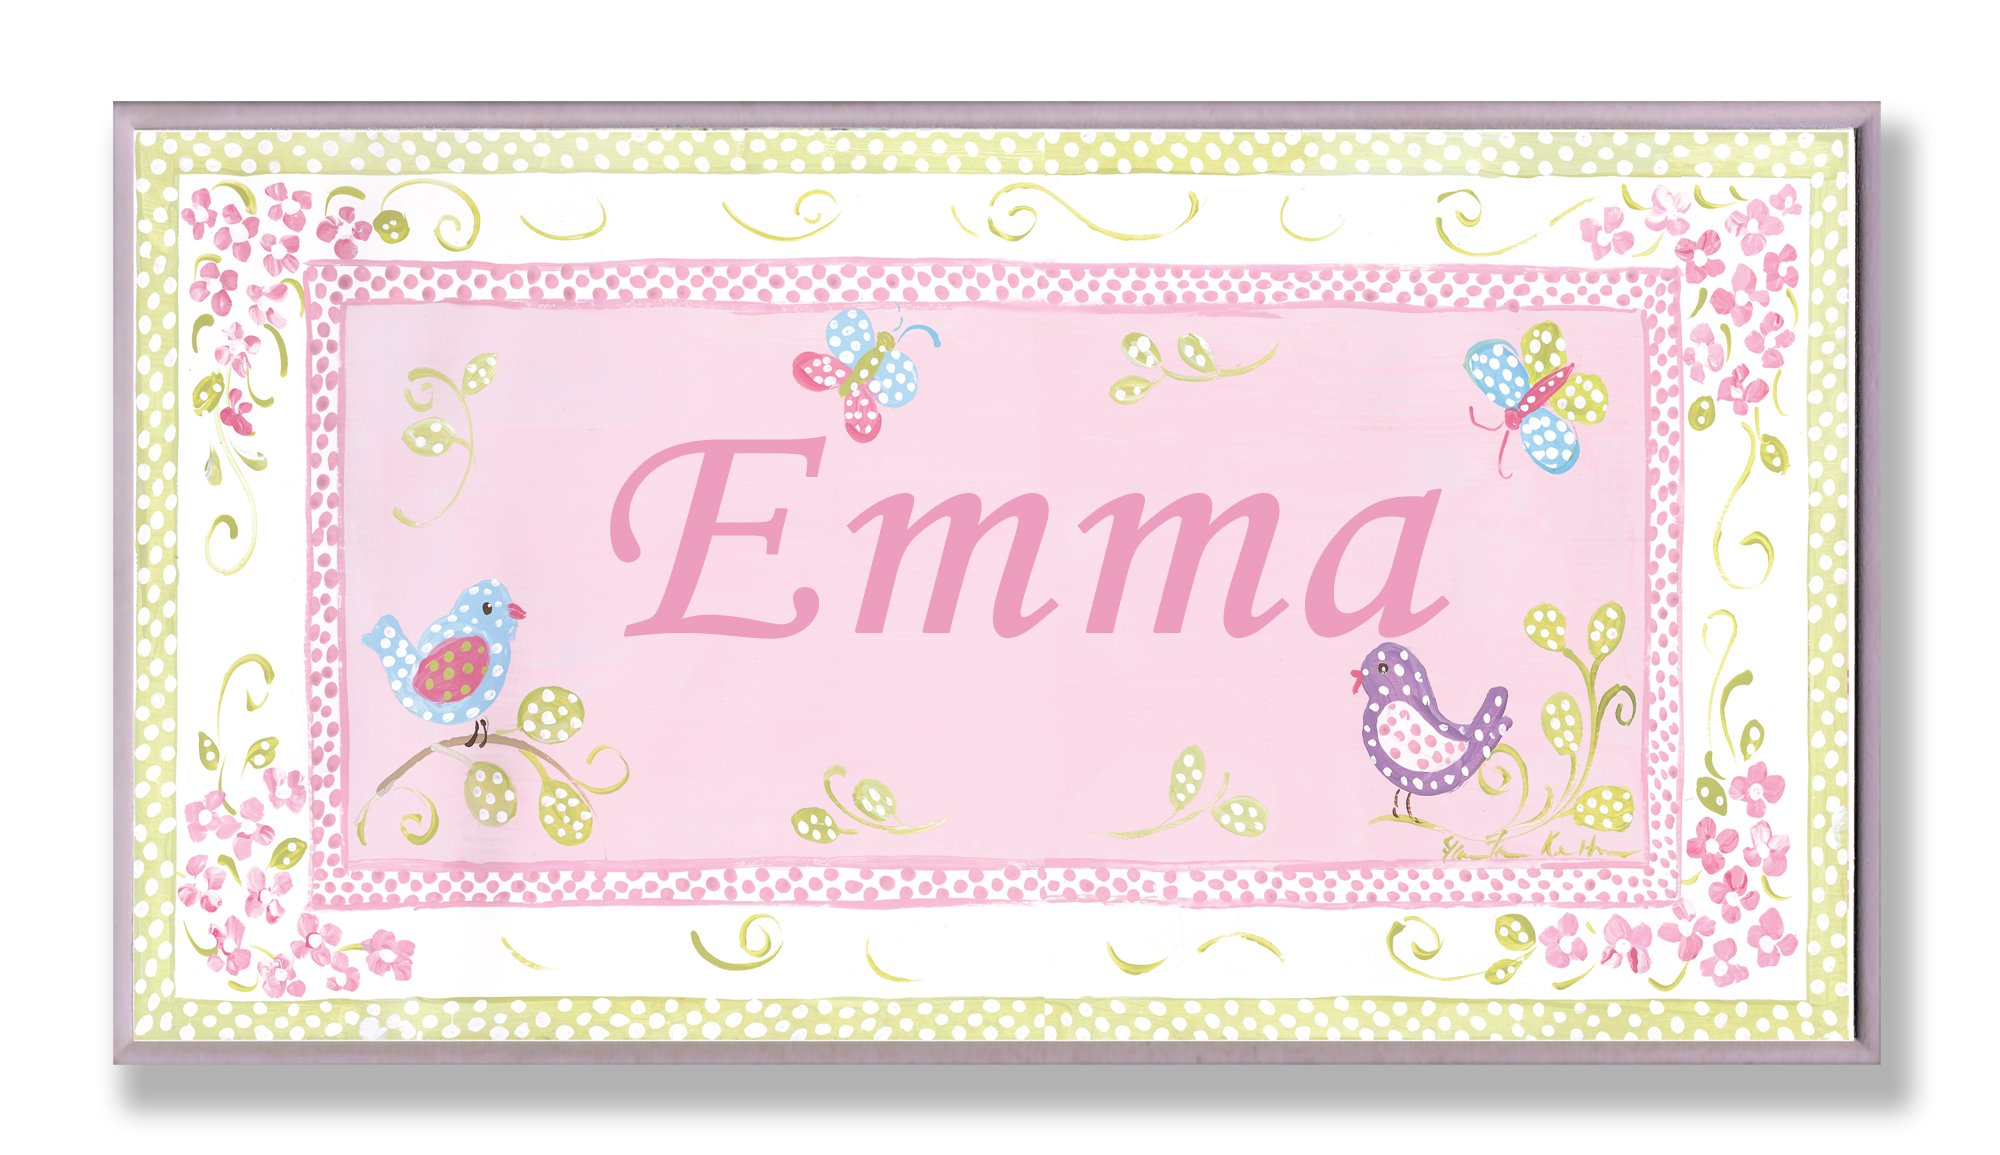 The Kids Room by Stupell Emma, Pink and Green Chickadees Personalized Rectangle Wall Plaque